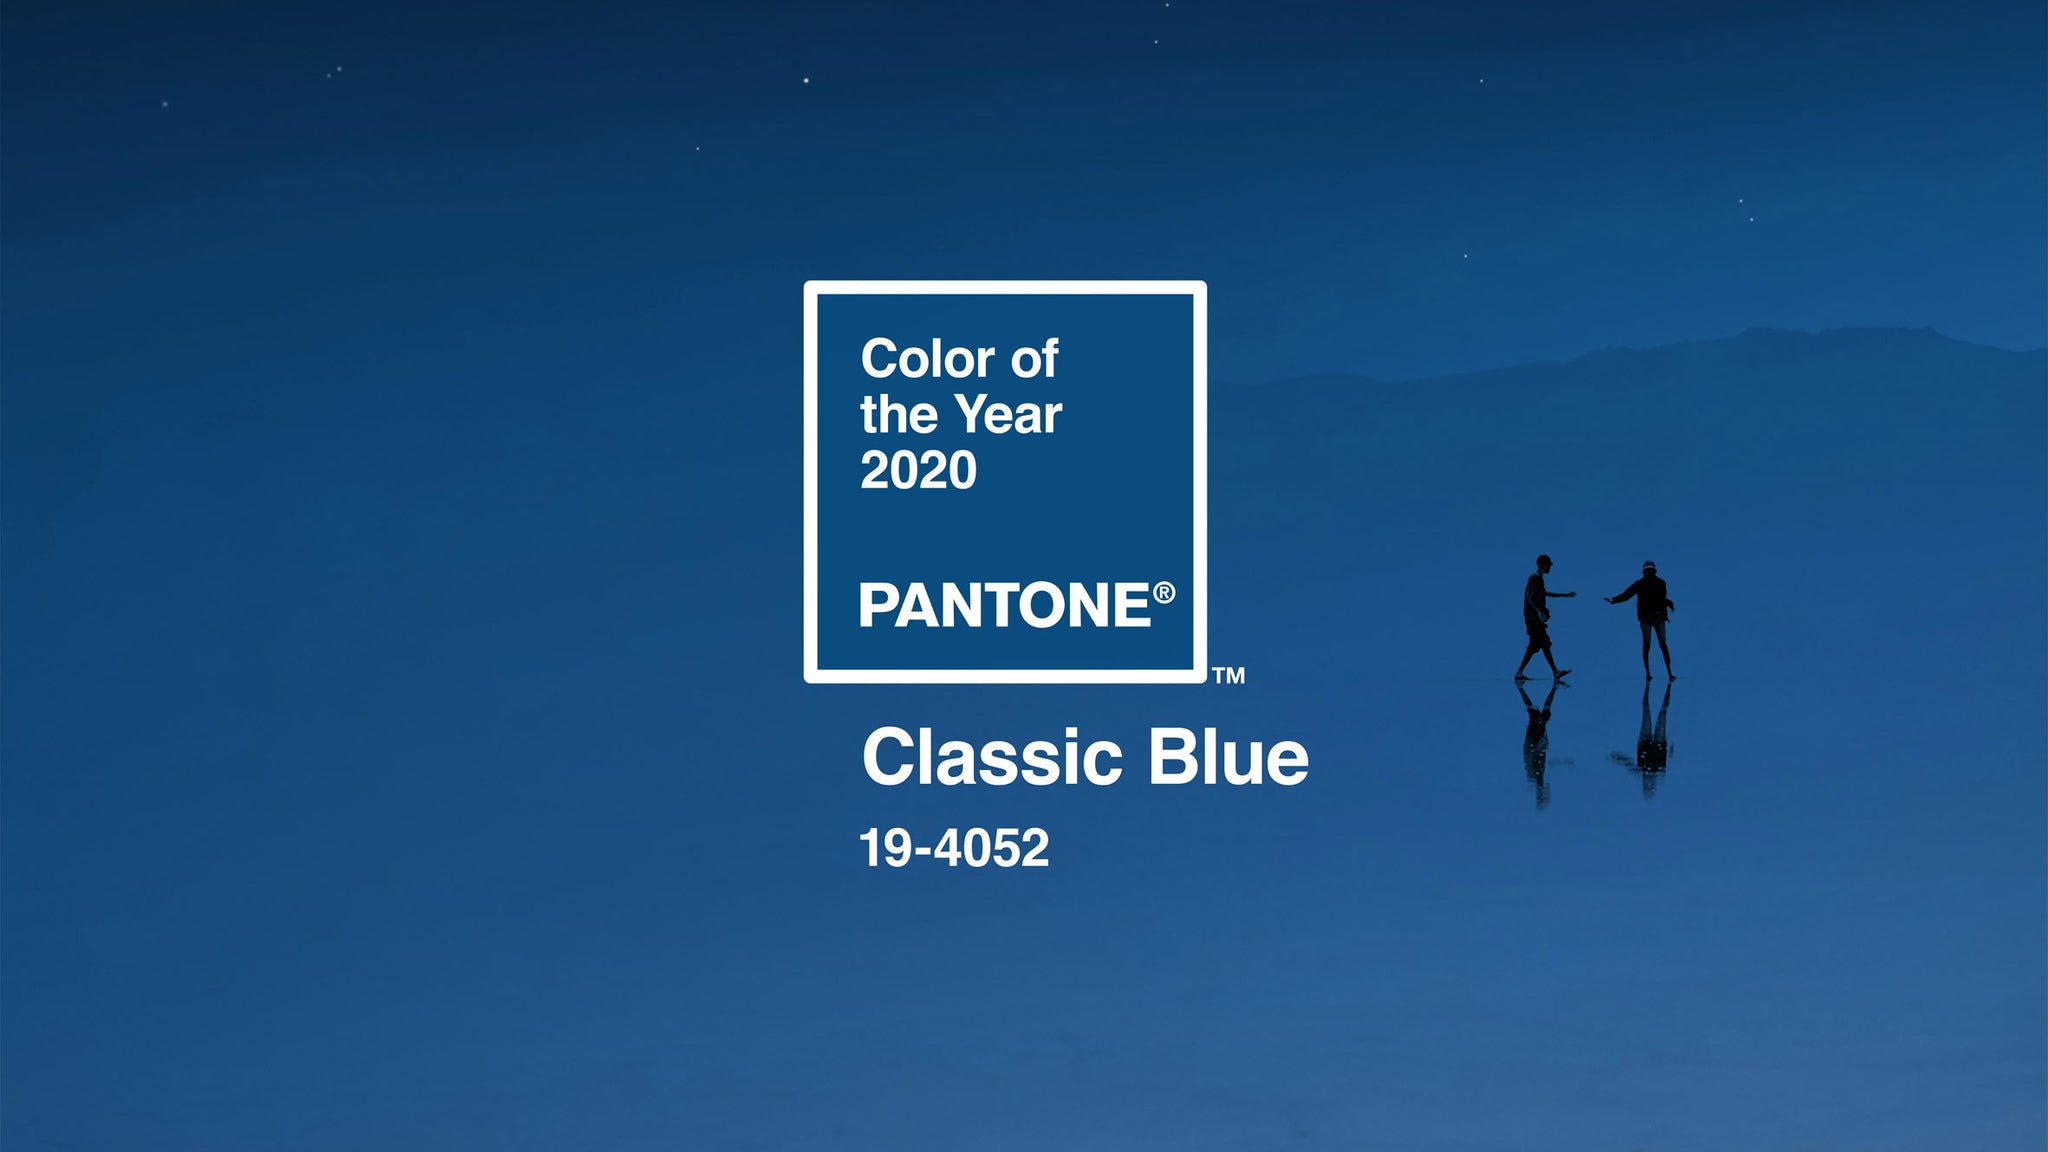 Colour of the Year 2020